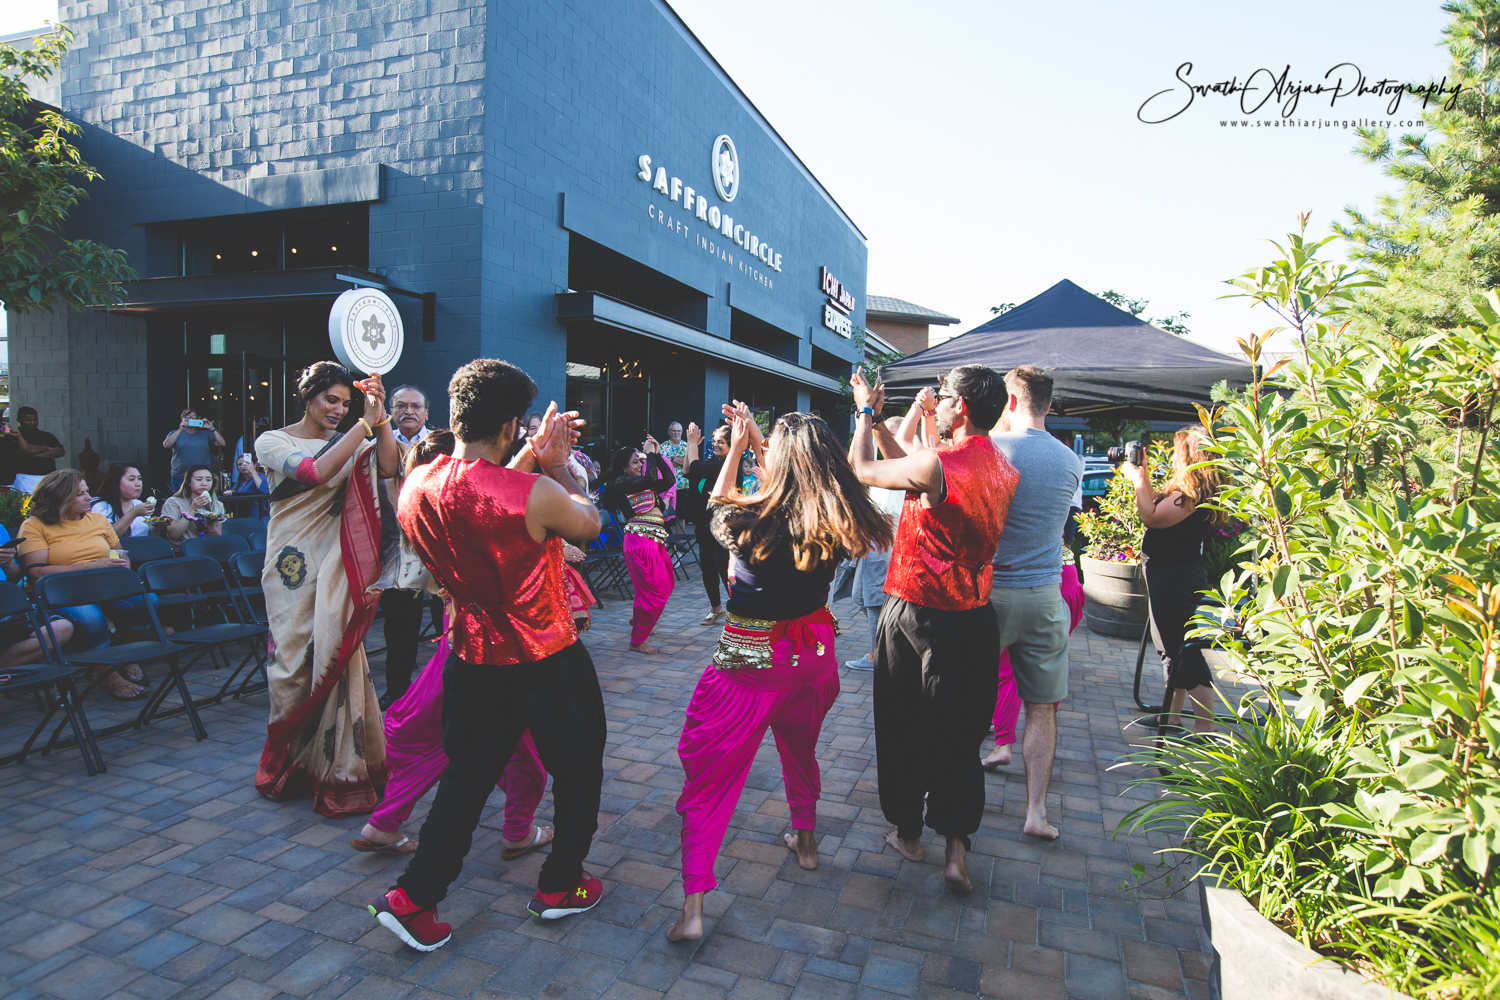 Bollywood dancing with guests and BollyPop Utah